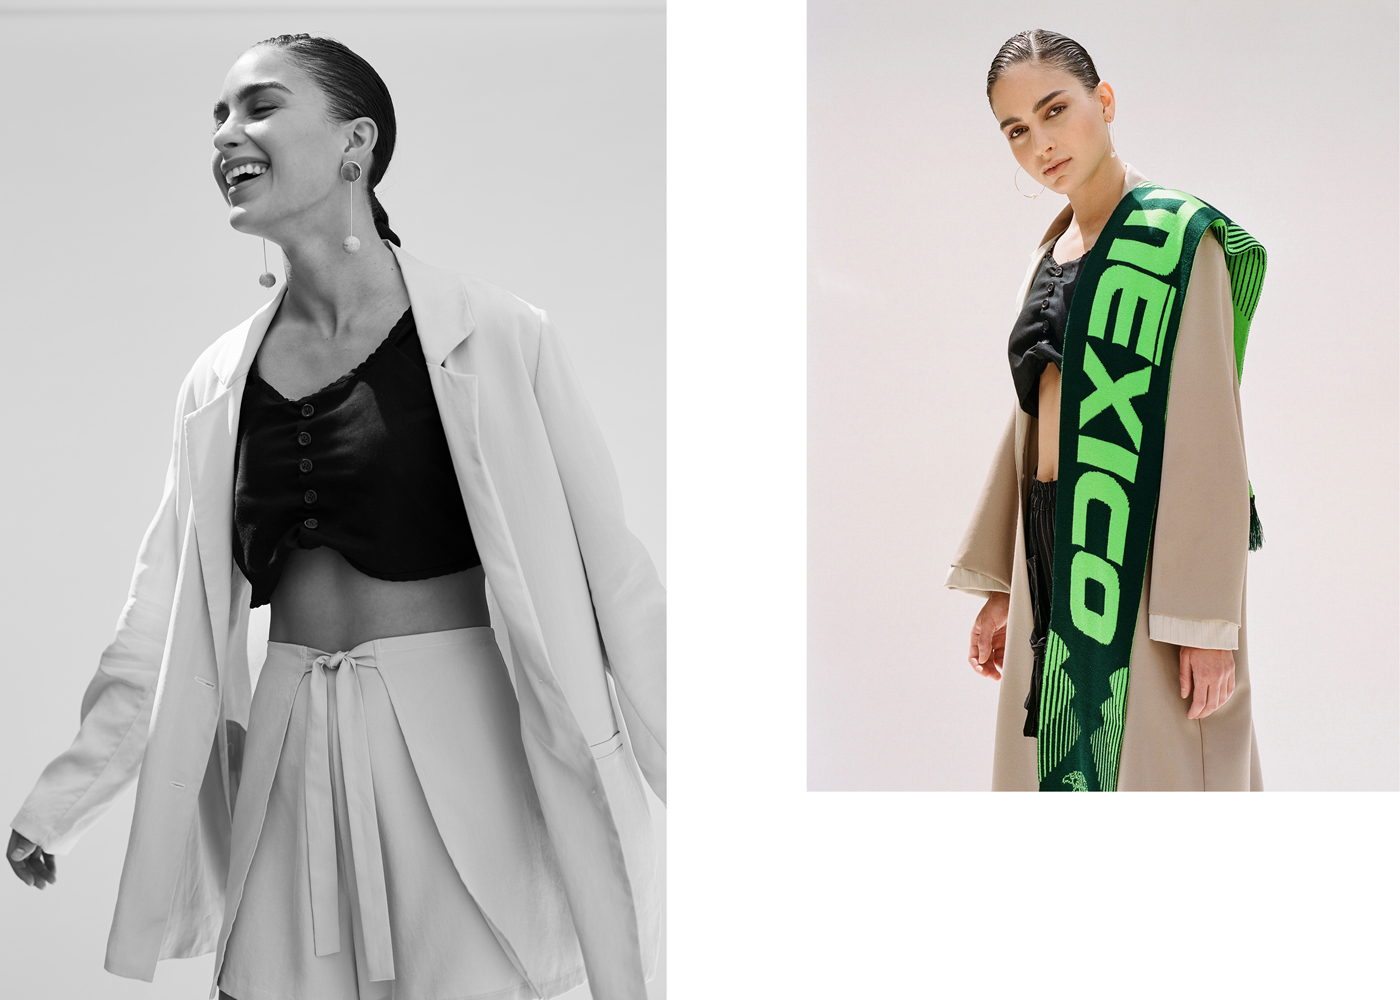 Left: Jacket and shorts by Shaina Mote. Top by Poche. Earrings by Modern Weaving.Right: All clothing by Poche. Earrings by Devon Pavlovits. Scarf, photographer's own.